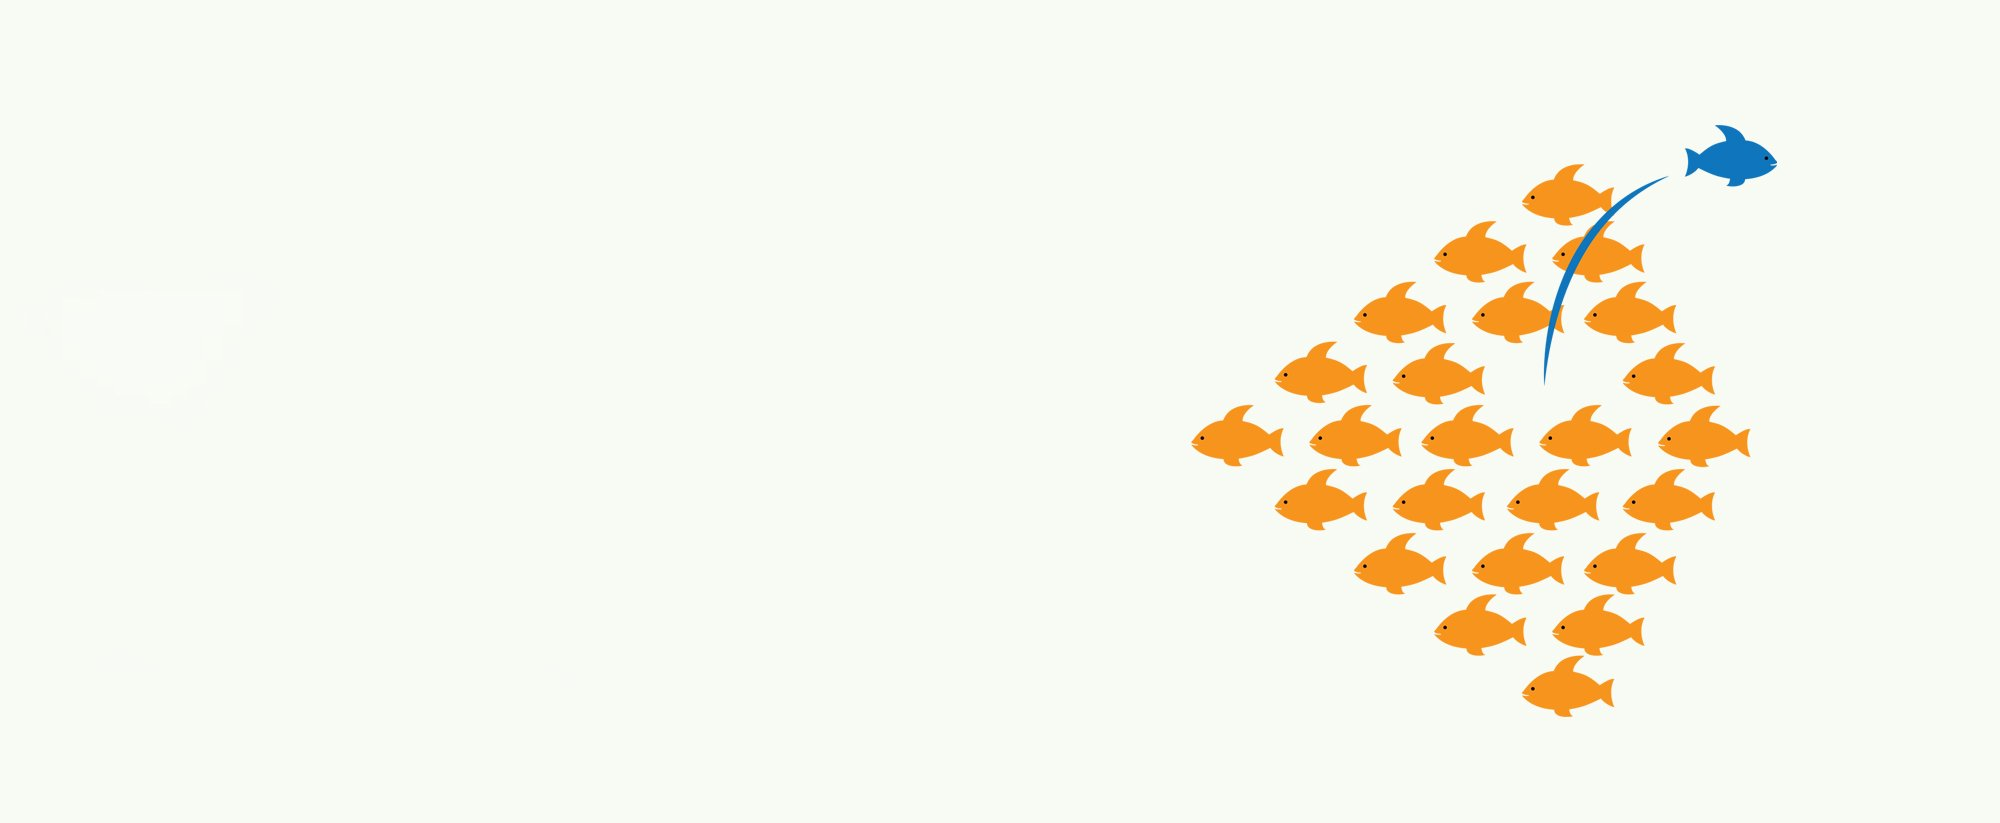 slide - a school of orange fish with one blue fish swimming out of the pack in the opposite direction